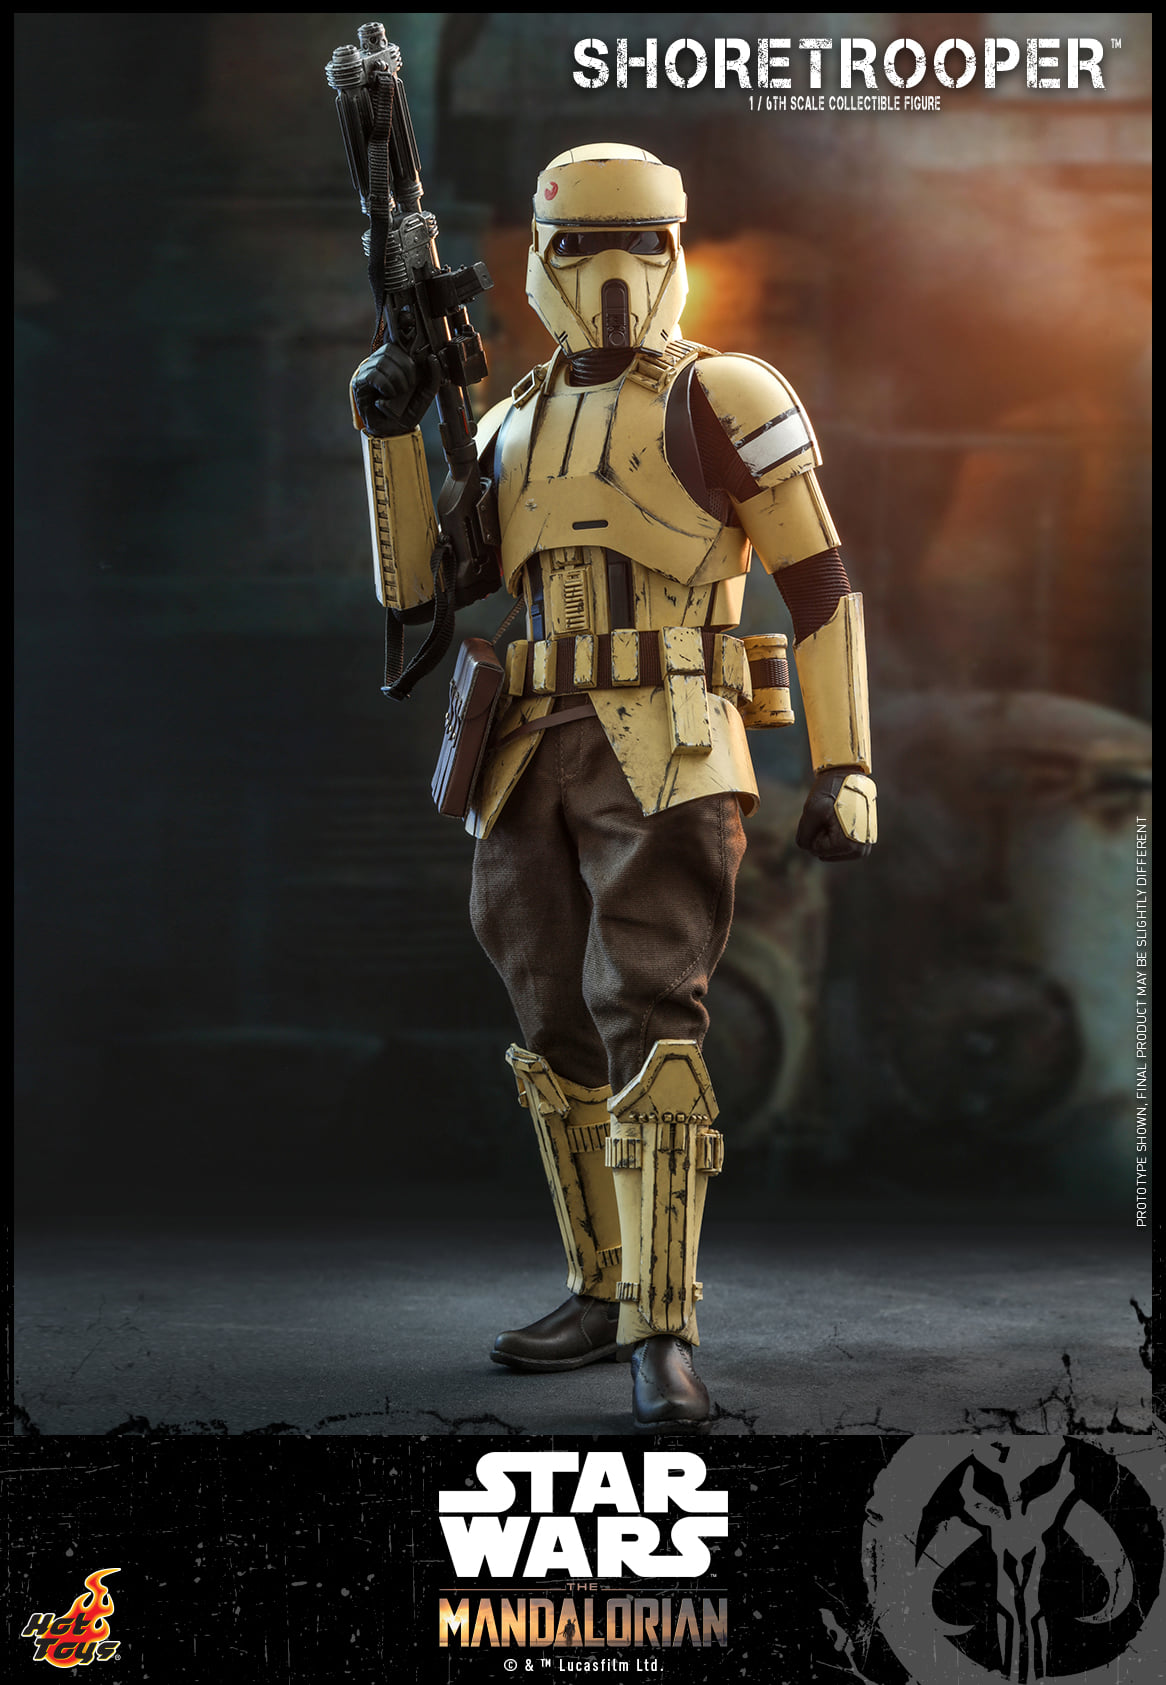 Pre-Order Hot Toys Star Wars Shoretrooper Mandalorian Figure